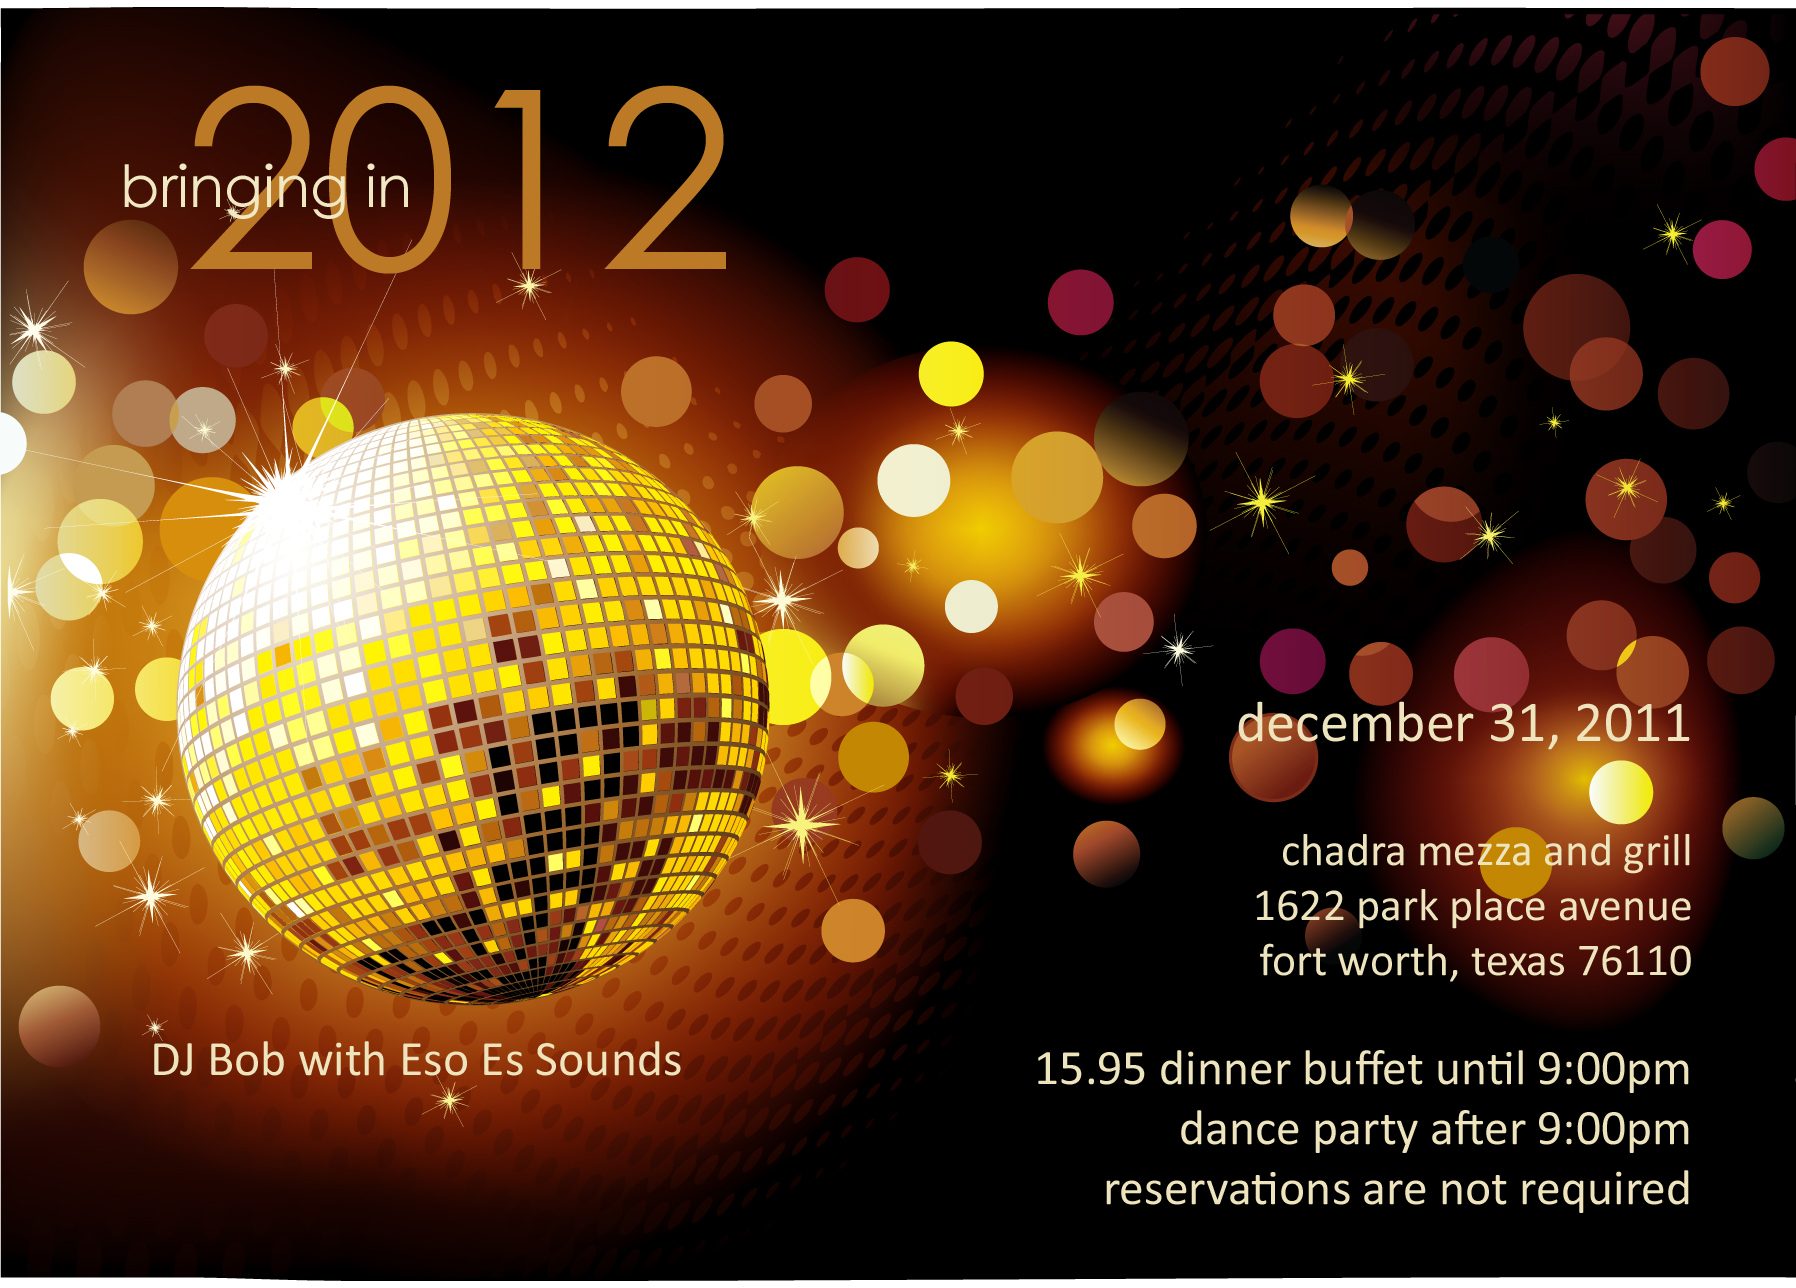 Bring in 2012 at Chadra! Dancing shoes required.